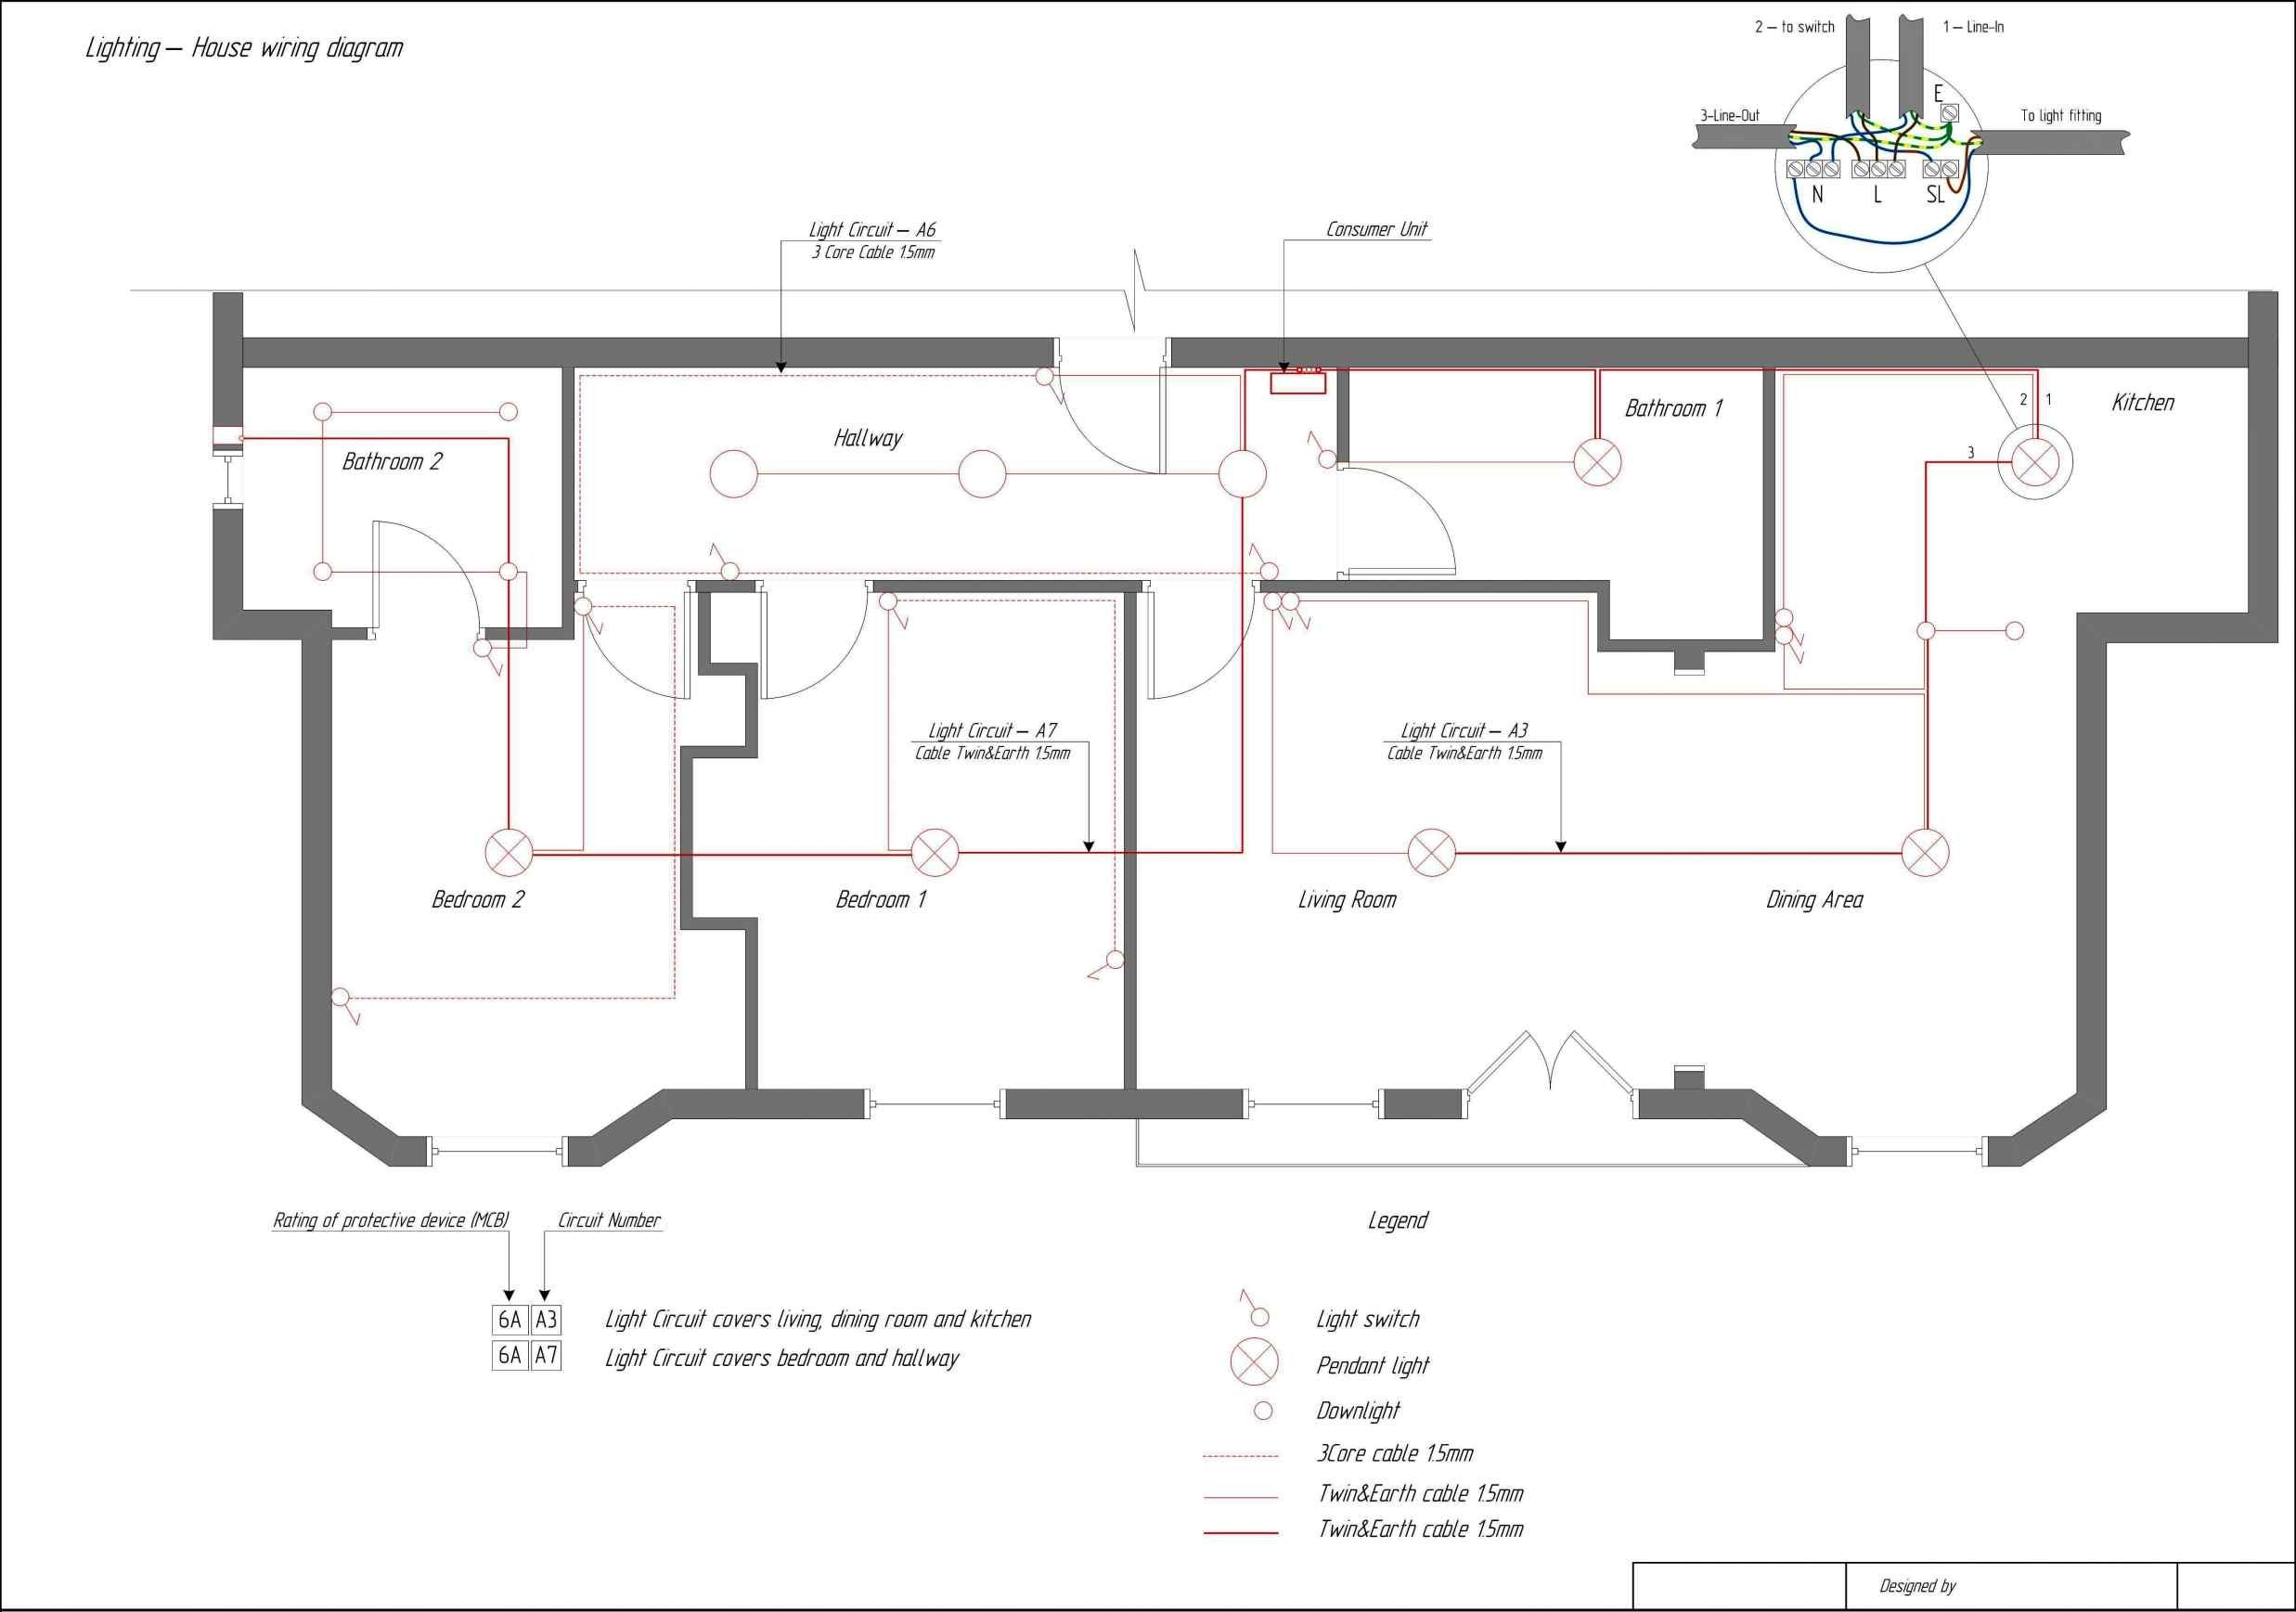 1974 mobile home electrical wiring diagram wiring diagram New Construction Electrical Wiring Diagram 1974 mobile home electrical wiring diagram wiring diagram \u2013 trailer house wiring diagram